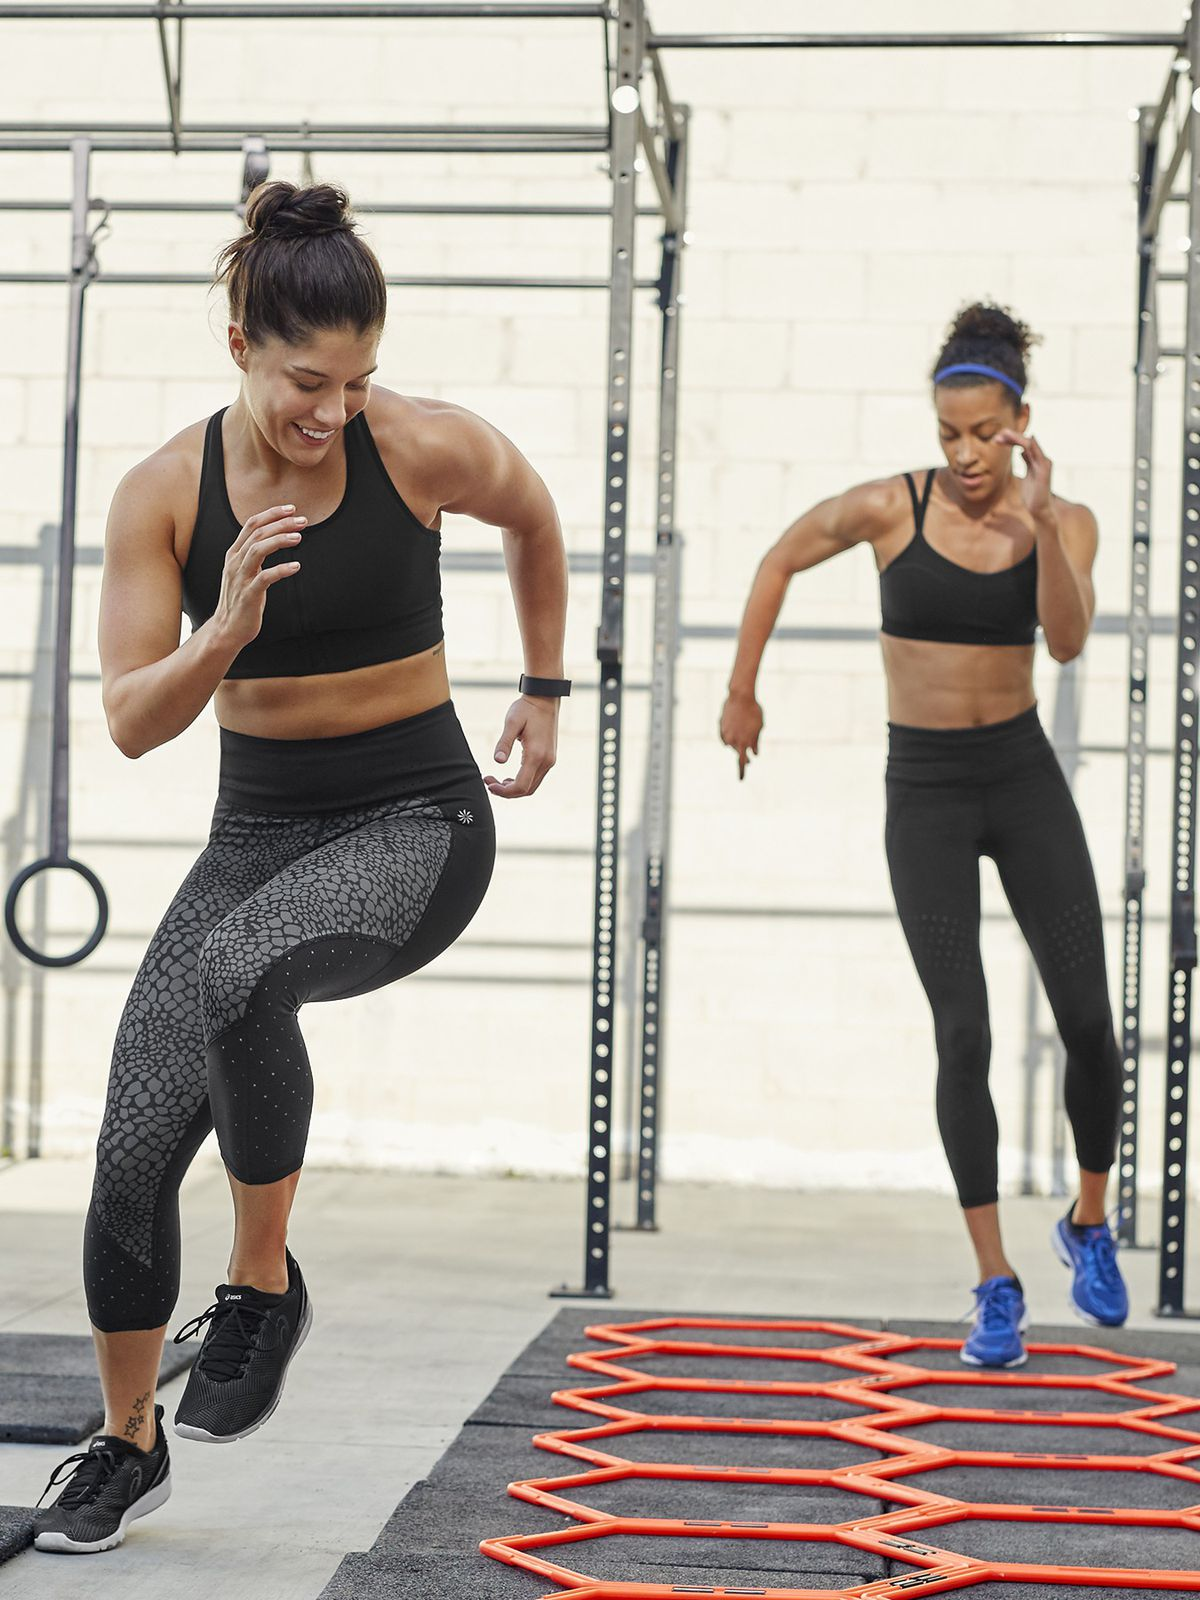 58b0bf746cdfb Two women working out in Athleta sports bras and leggings in the gym.